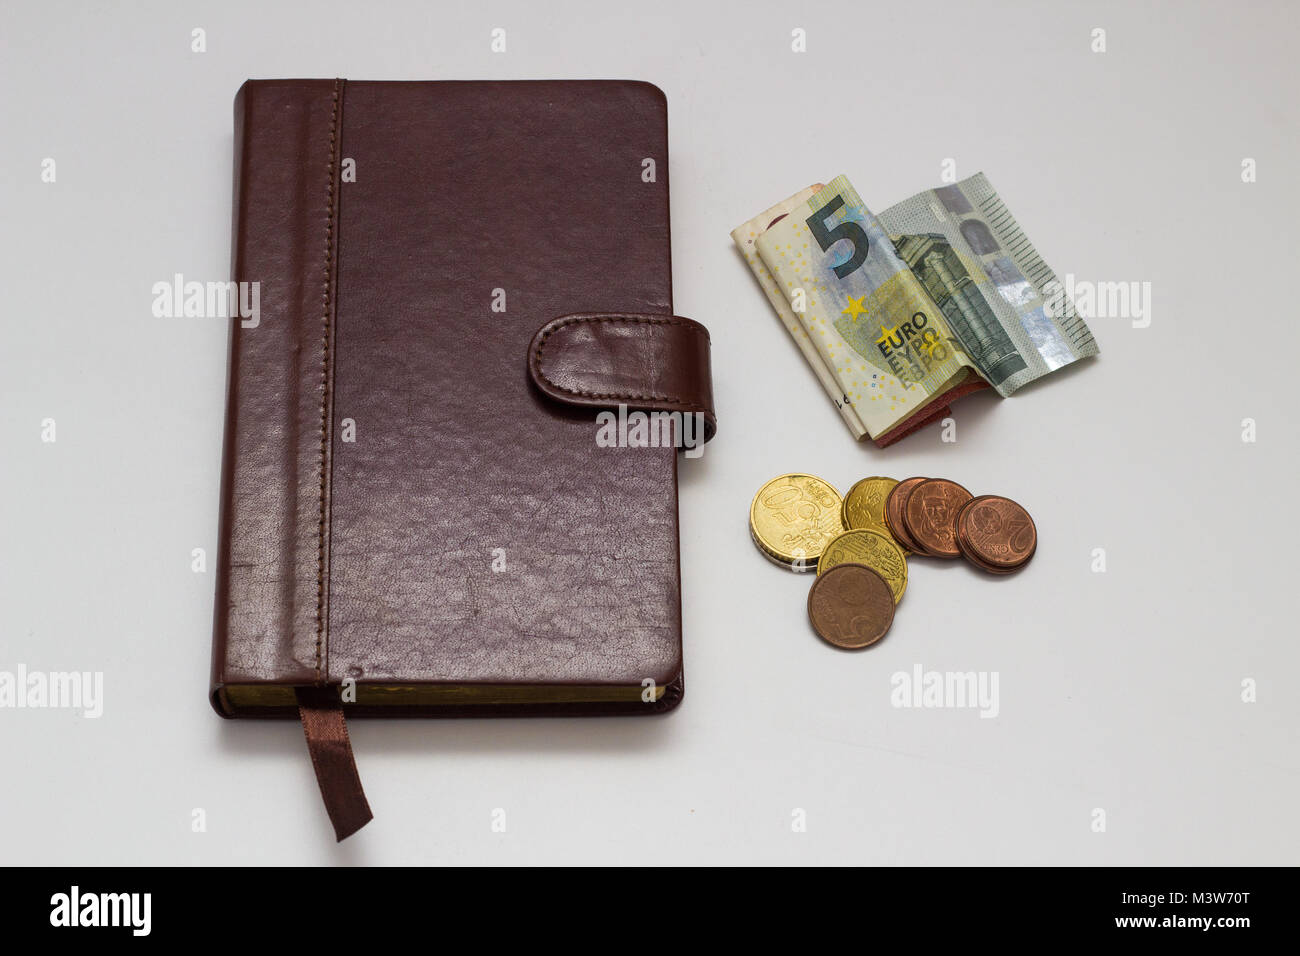 Note book and Euro banknotes and coins on a white background - Stock Image